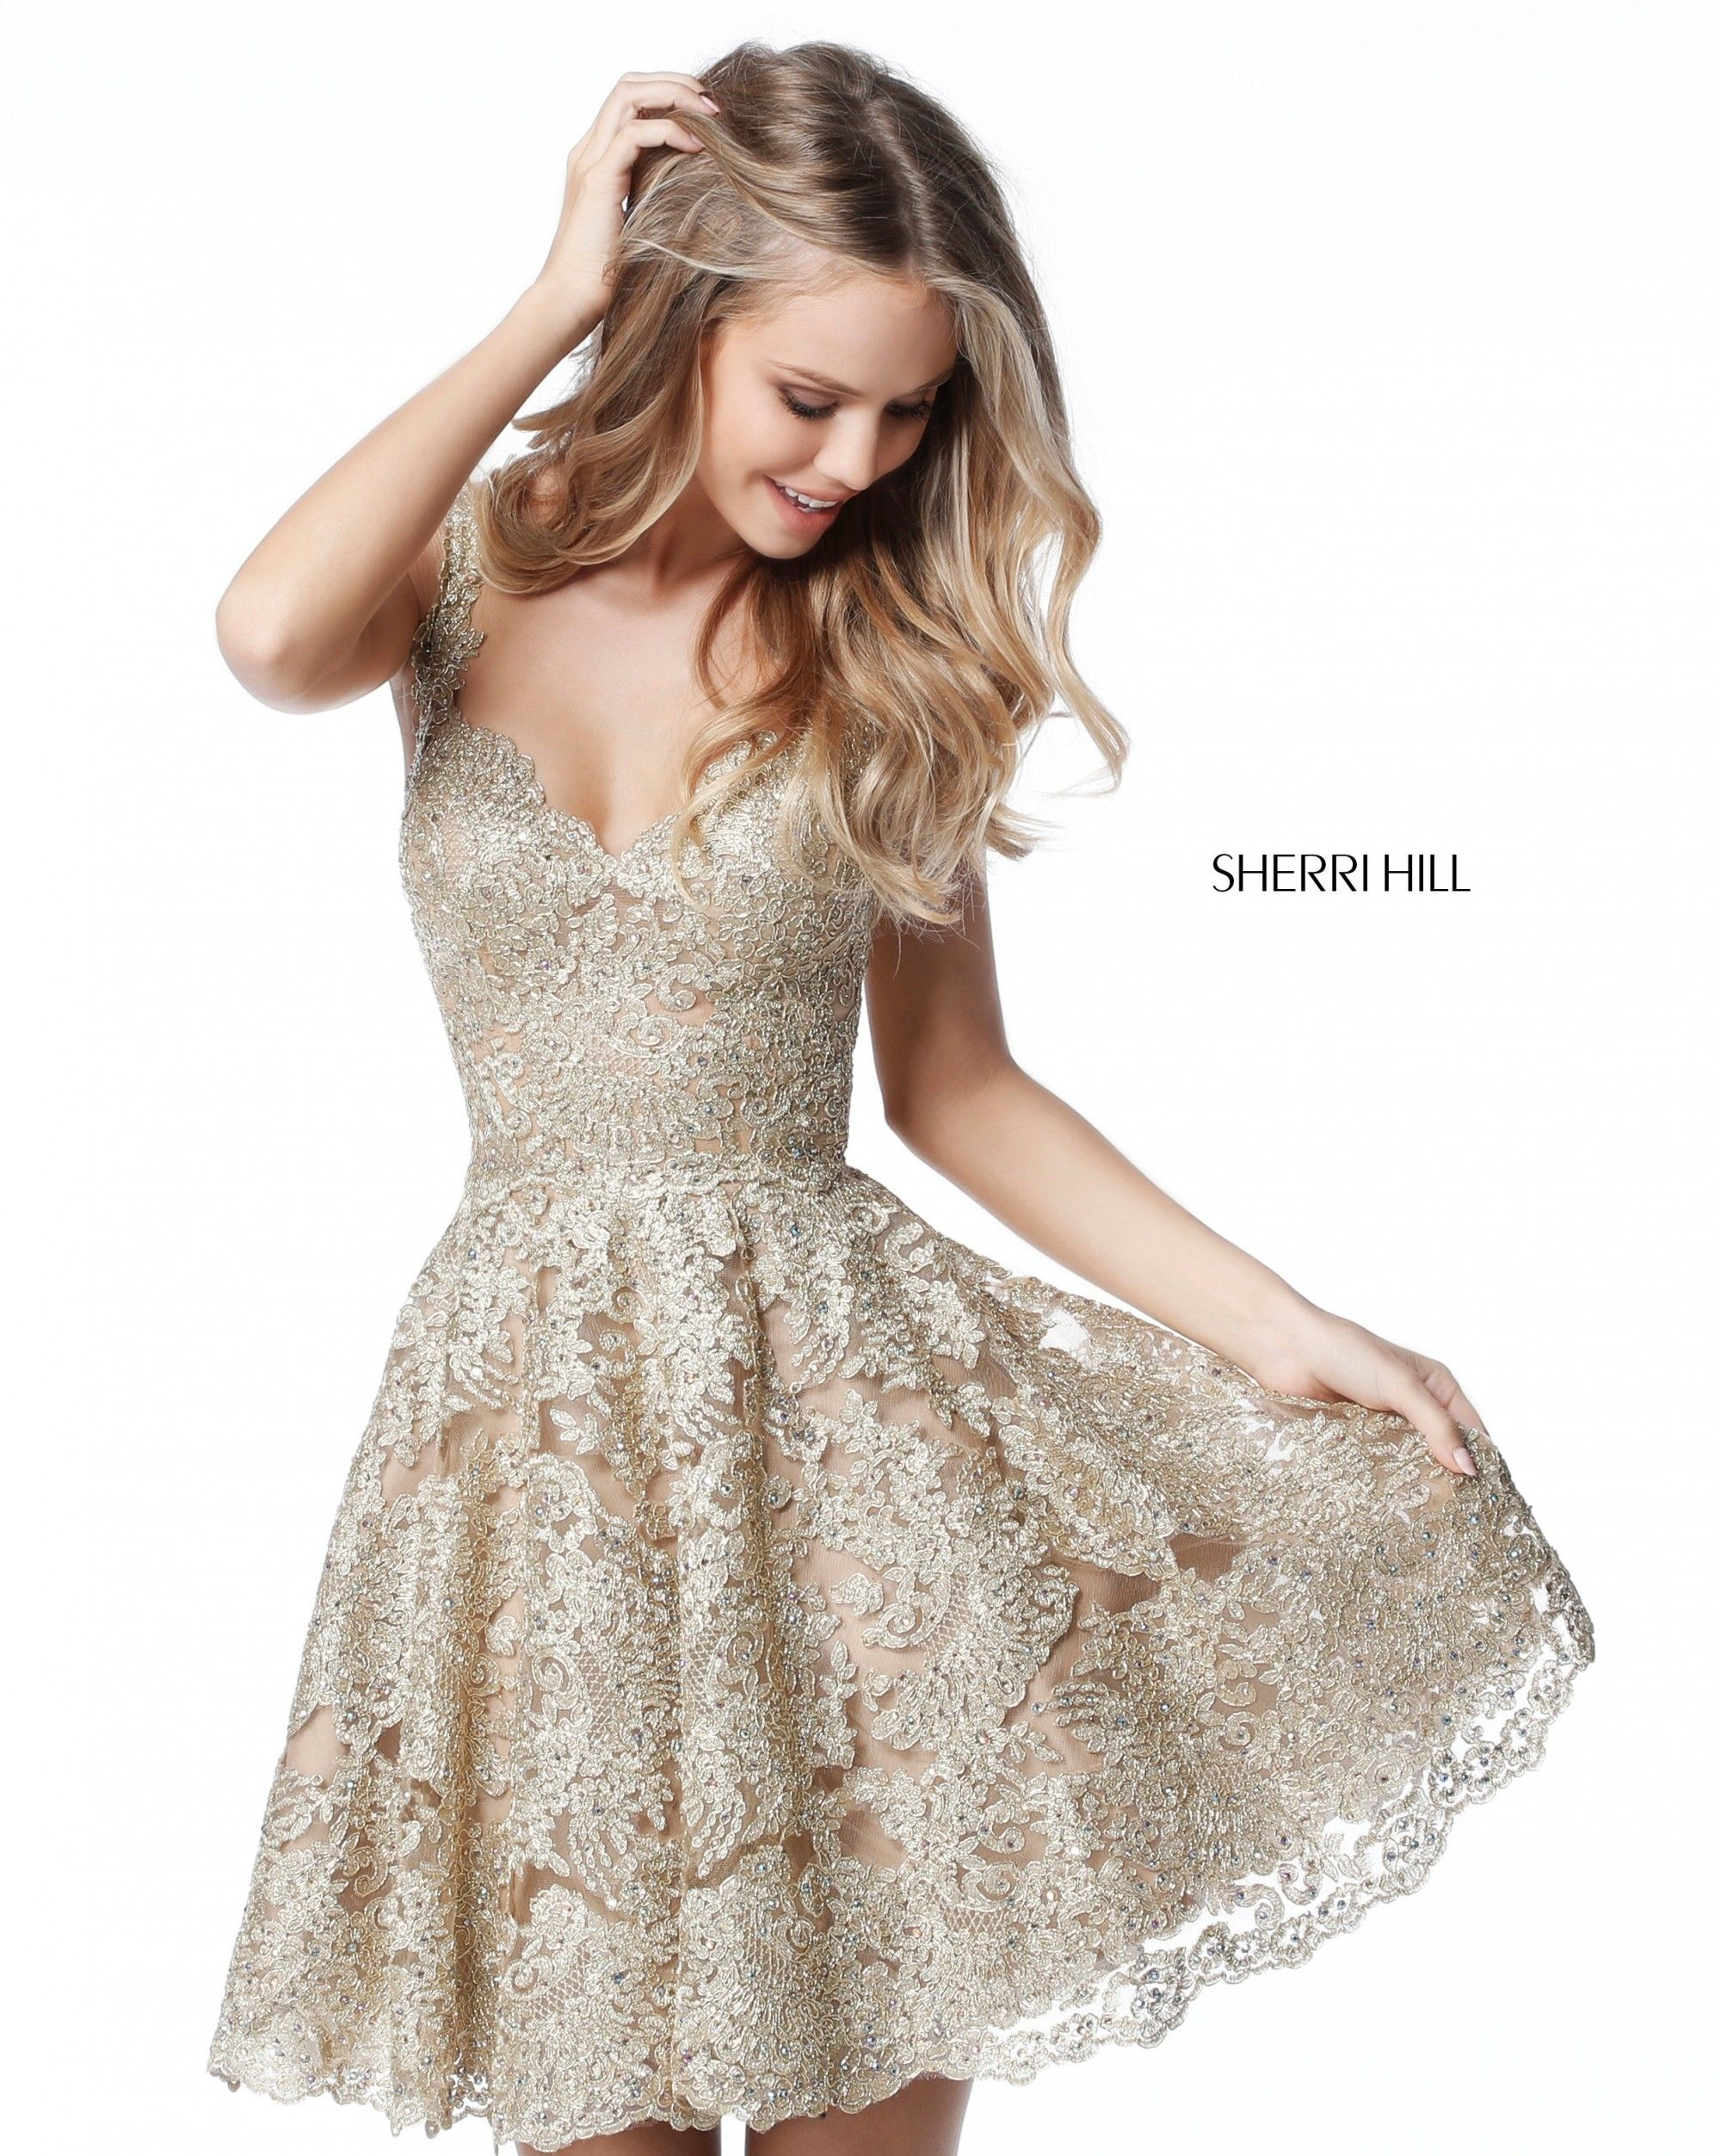 aec3f5728f46 Experience a modern fairy tale in Sherri Hill 51521. This romantic party  dress has a sheer lace bodice, with a sweetheart neckline, opaque bra cups,  ...